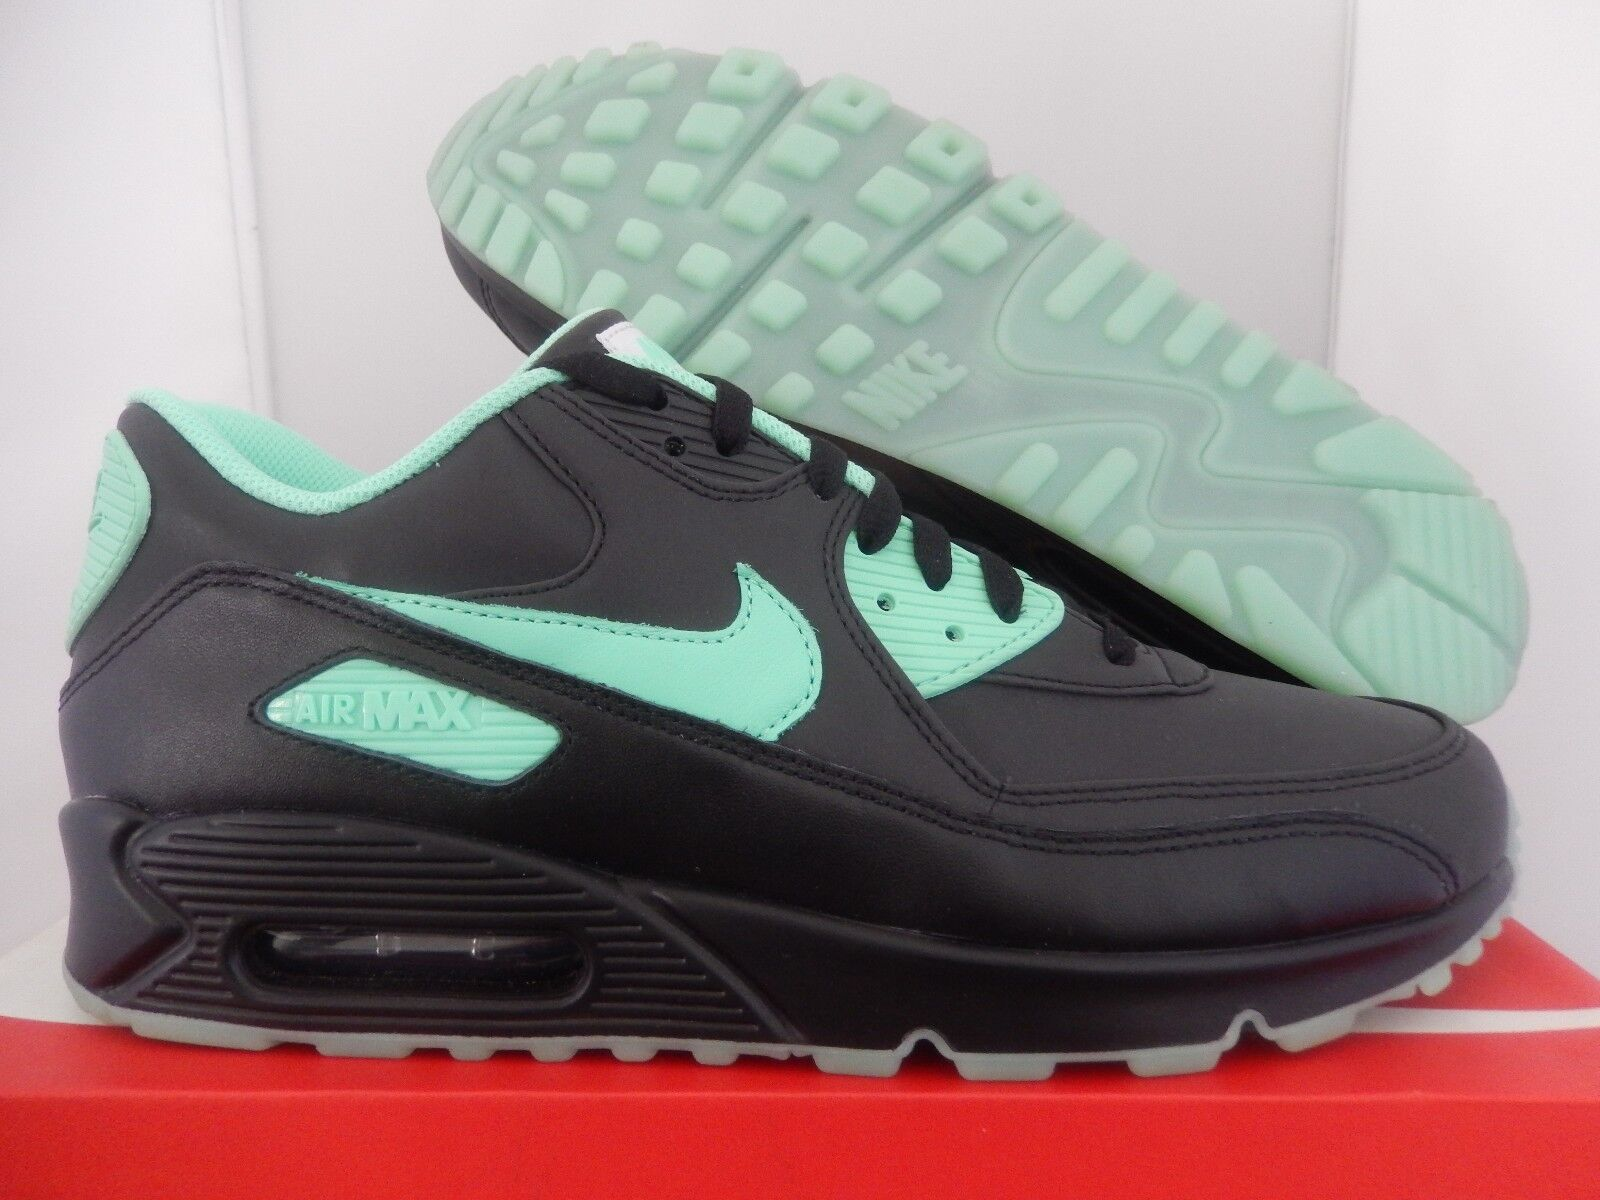 Nike air max 90 id nero-mint green sz - 653533-999]